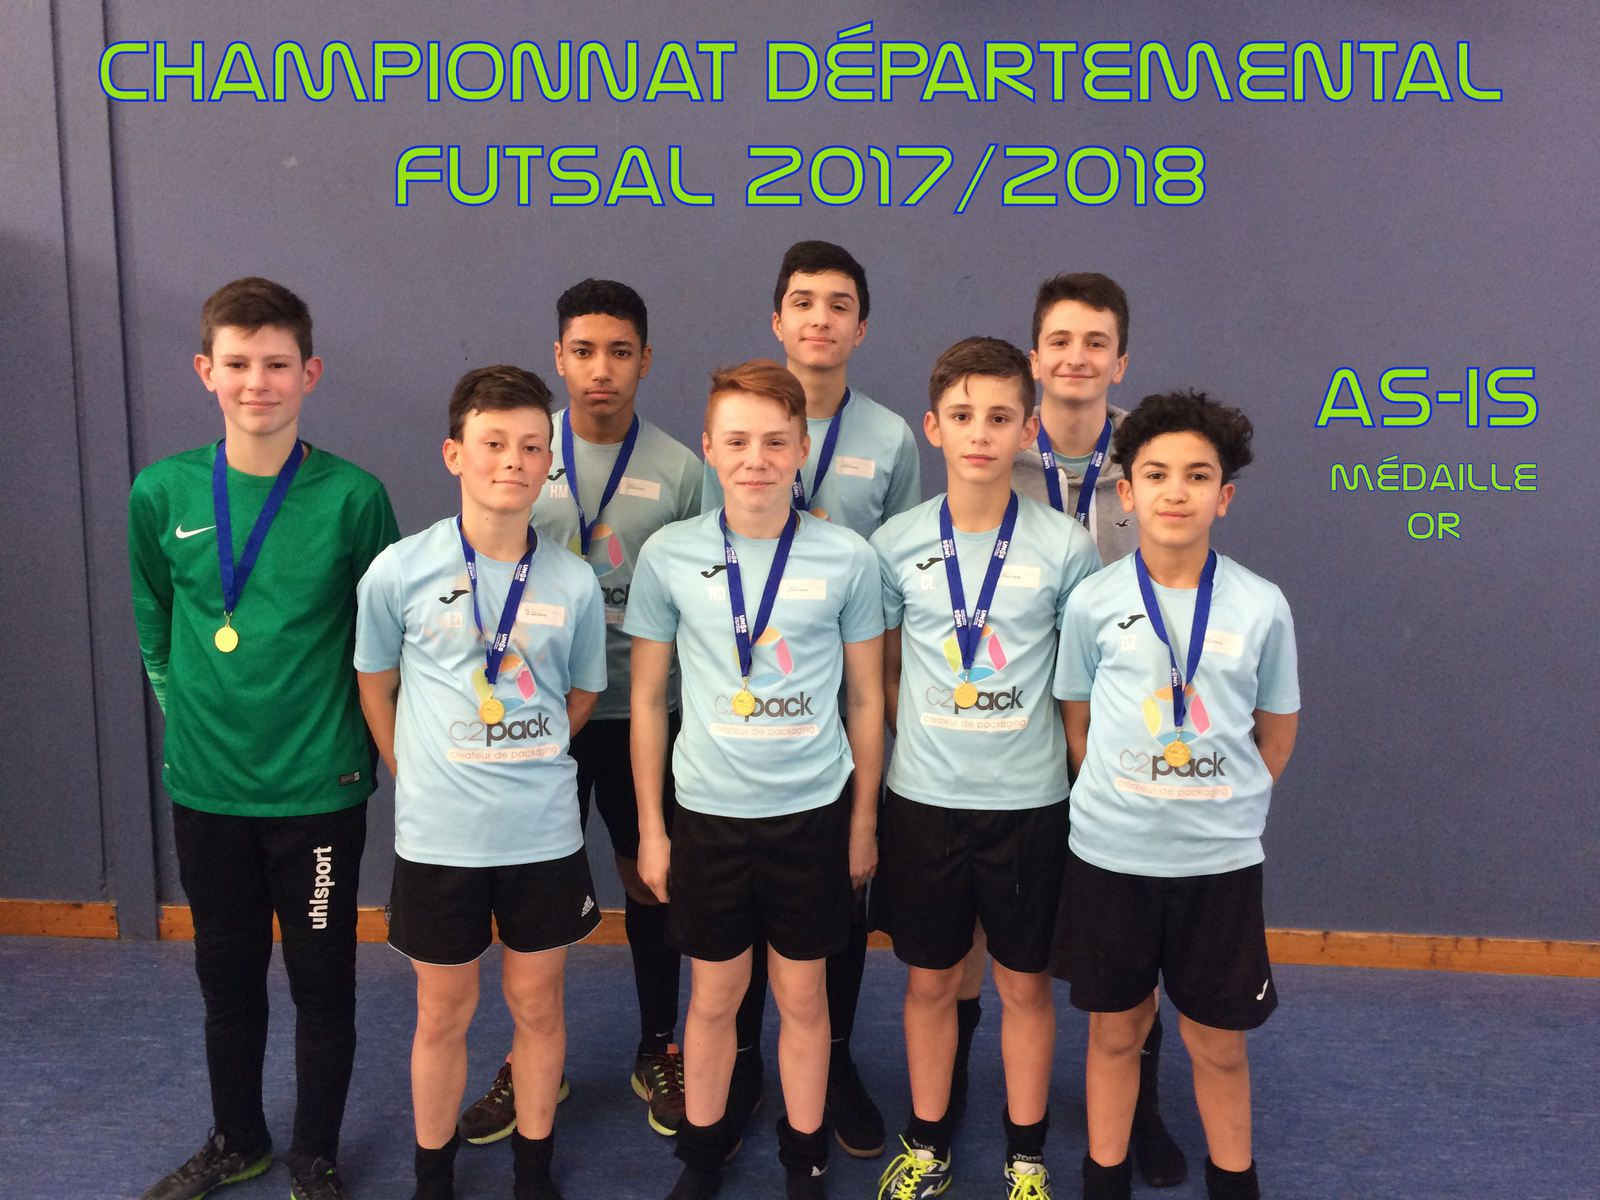 AS-IS Champion Départemental 2017/2018 - FUTSAL